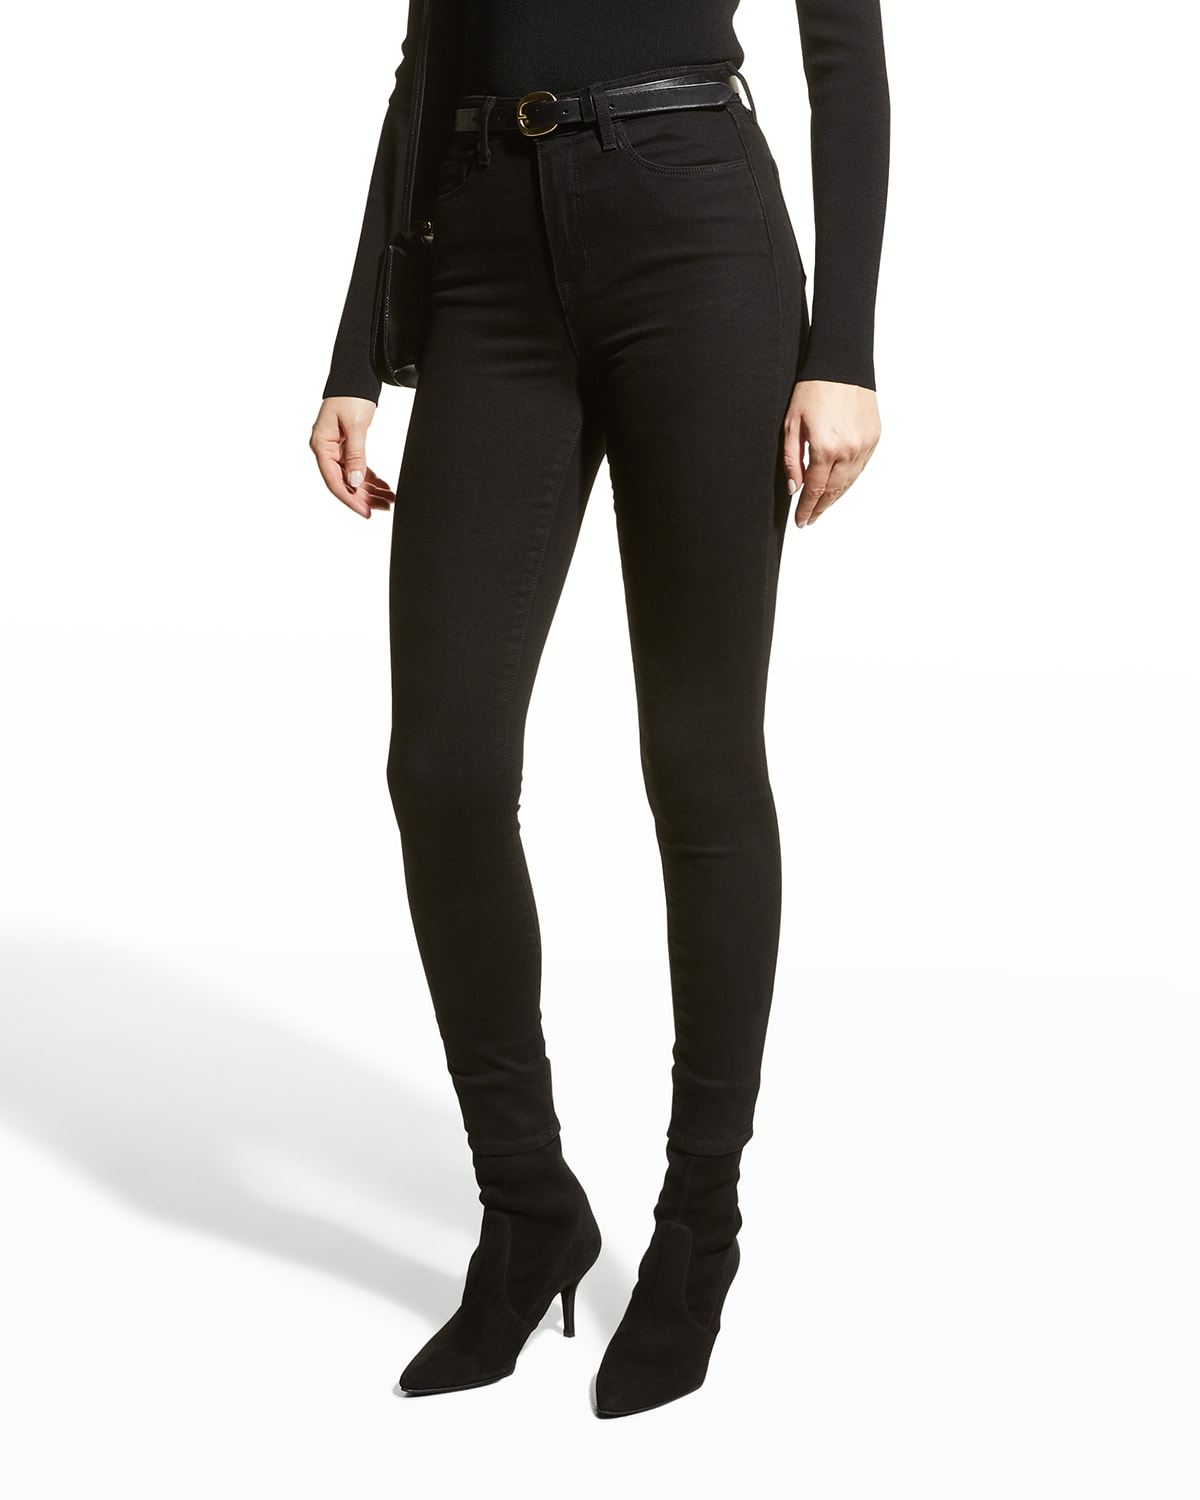 Monique Ultra High-Rise Skinny Jeans